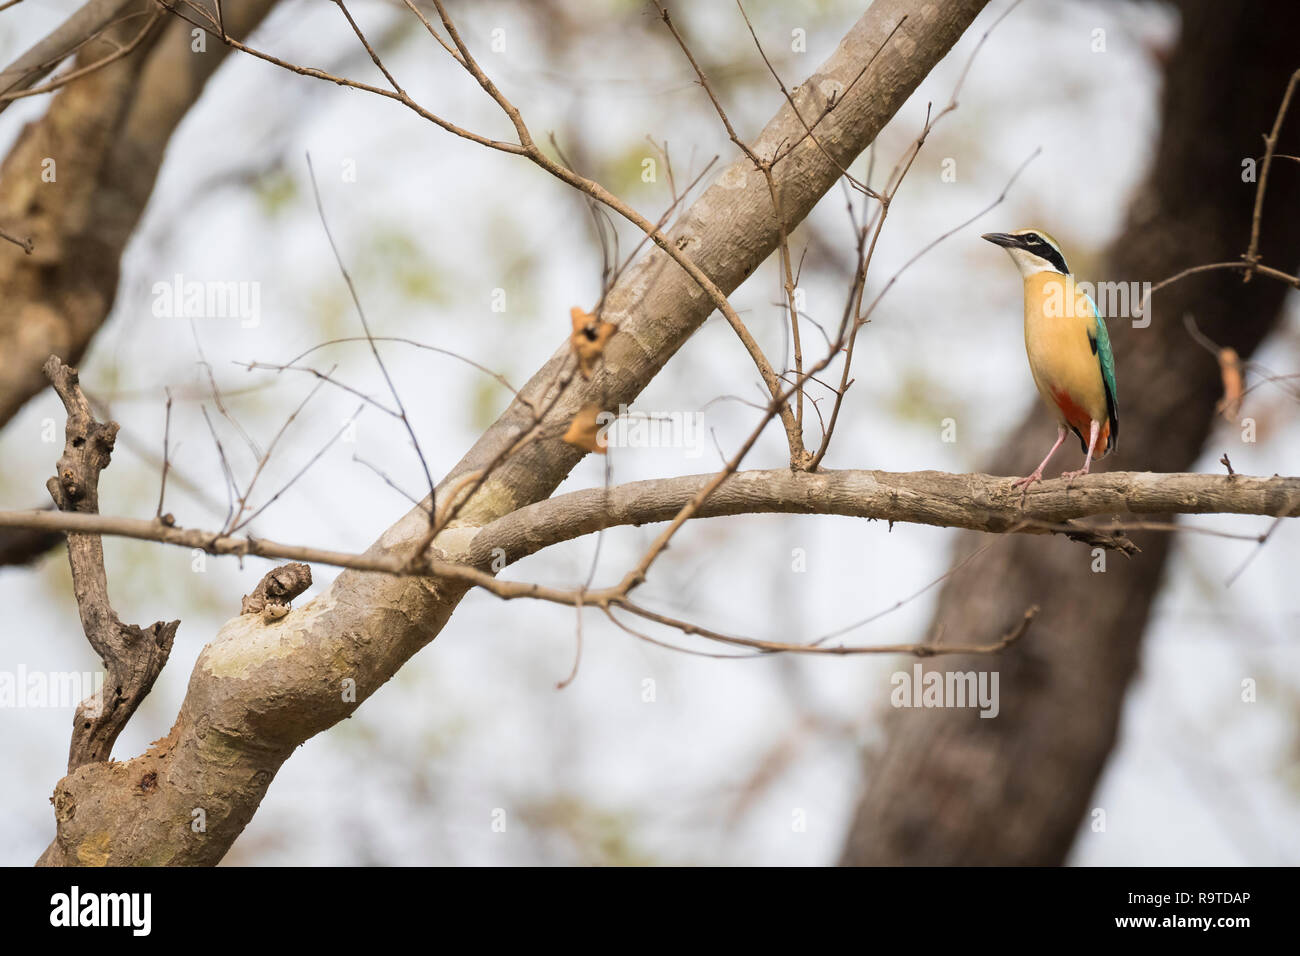 Indian Pitta (Pitta brachyura) perched on branch. Corbett National Park. Uttarakhand. India. - Stock Image